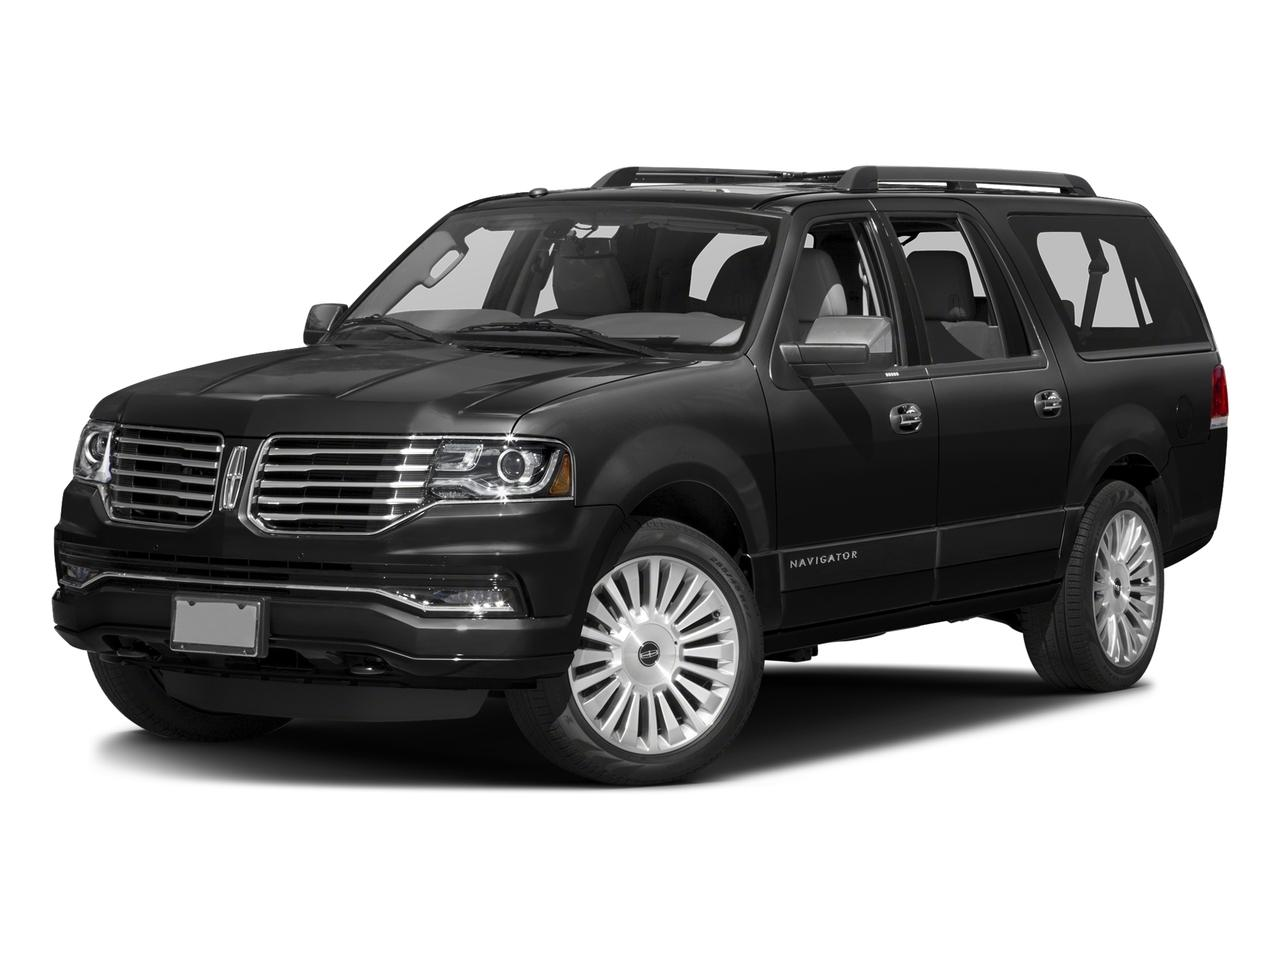 2015 LINCOLN Navigator L Vehicle Photo in Portland, OR 97225